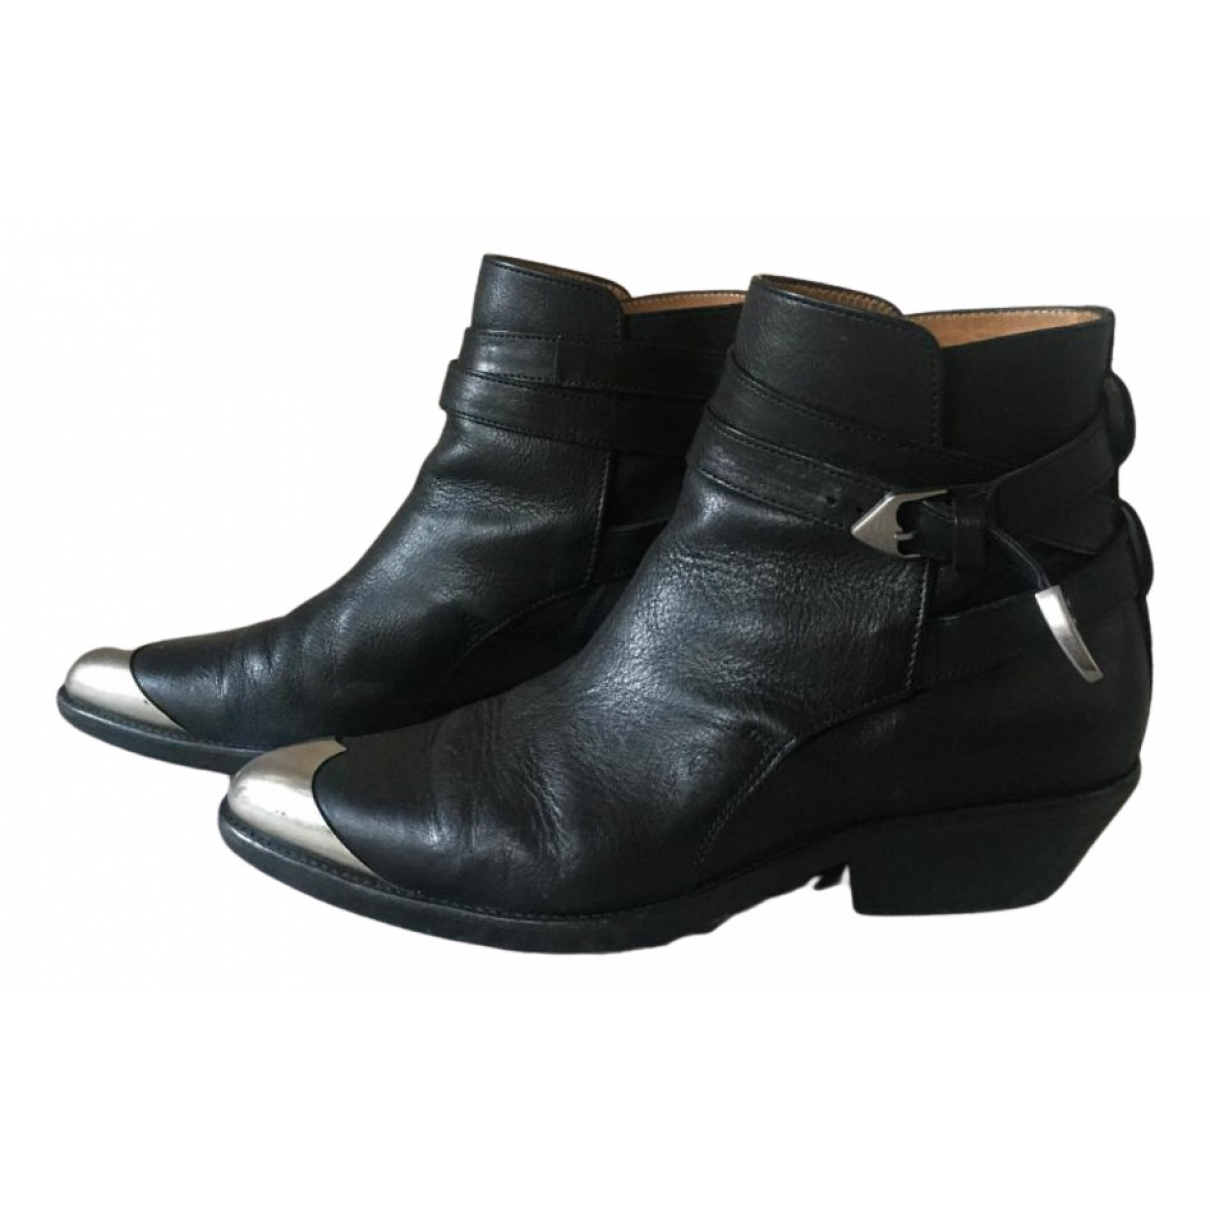 Isabel Marant N Black Leather Ankle boots for Women 39 EU